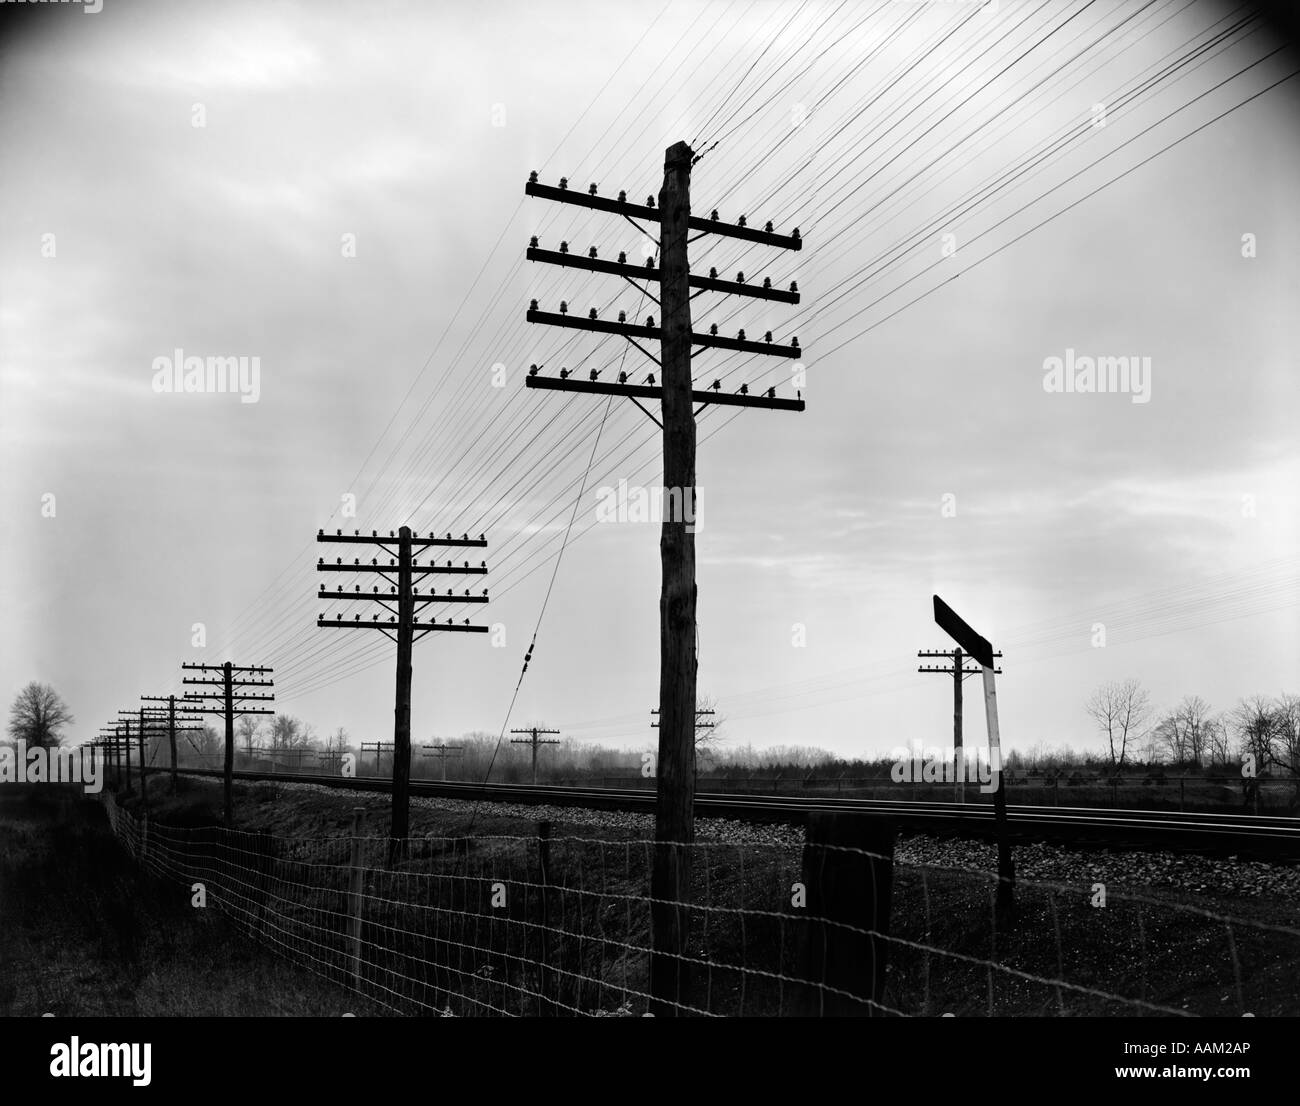 Pleasant 1930S 1940S Telegraph And Telephone Poles And Wires Along Railroad Wiring Digital Resources Anistprontobusorg